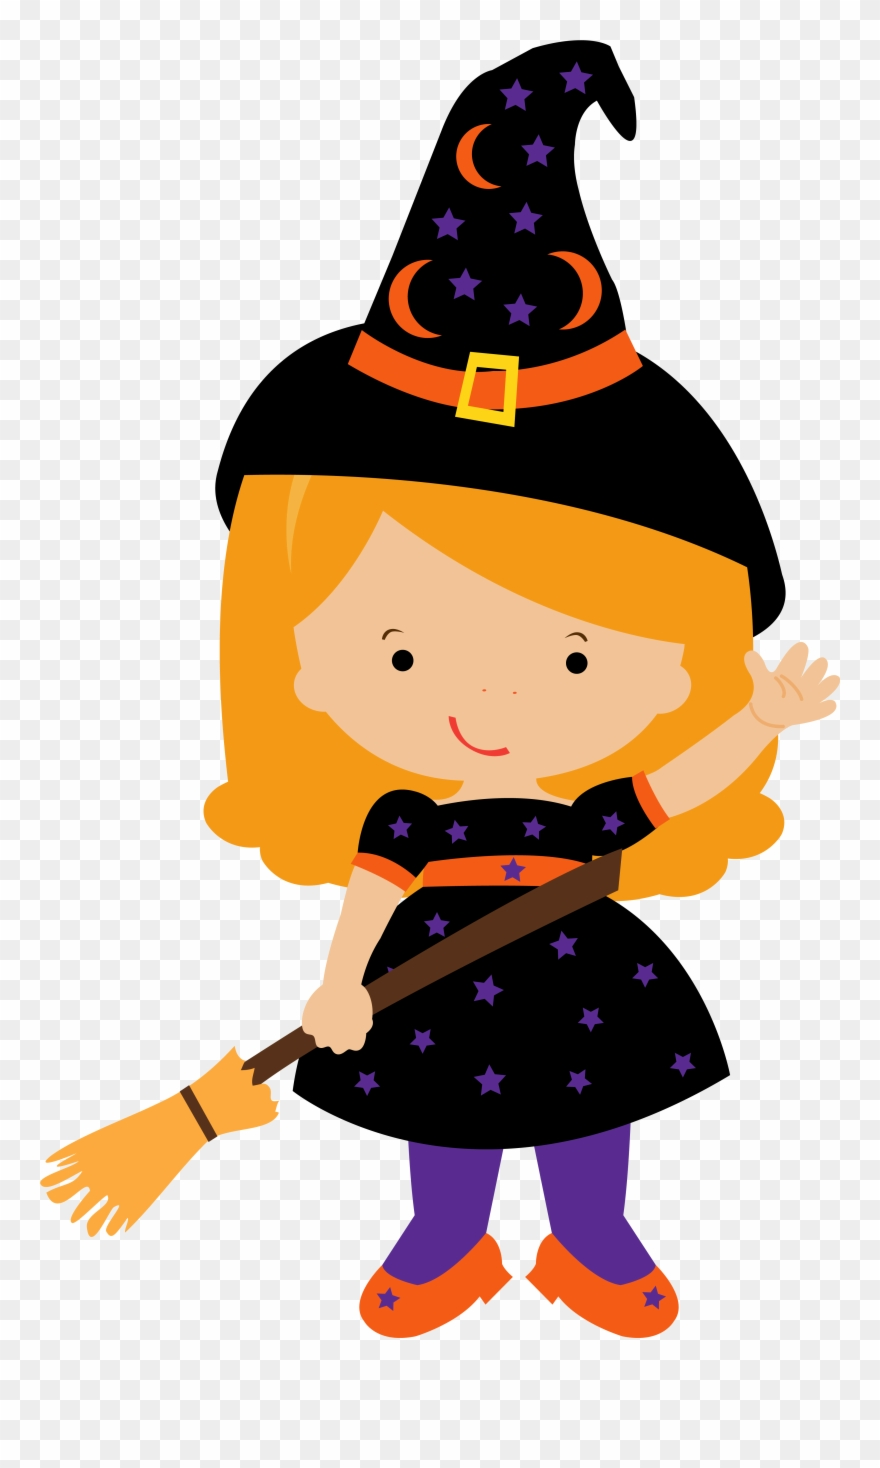 Witch clipart png image transparent library Free Halloween Witch Clipart 13 Clip Art - Transparent ... image transparent library